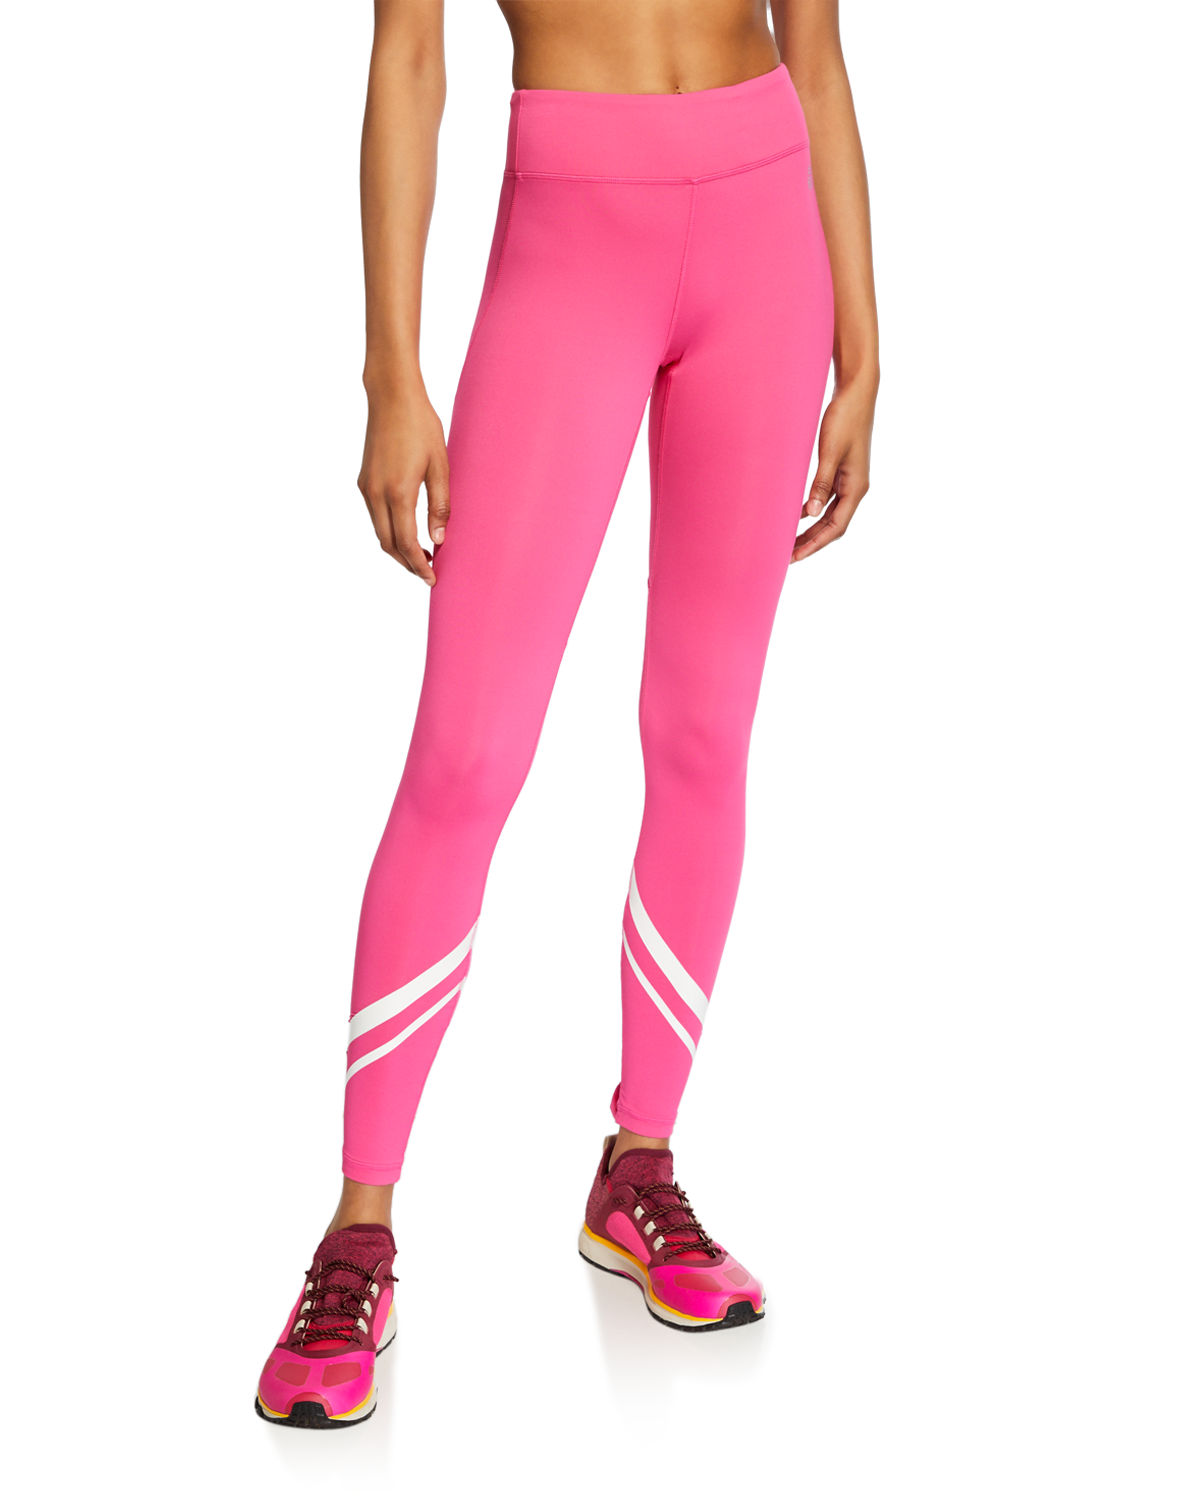 Tory Sport Pants CHEVRON FULL-LENGTH PERFORMANCE LEGGINGS